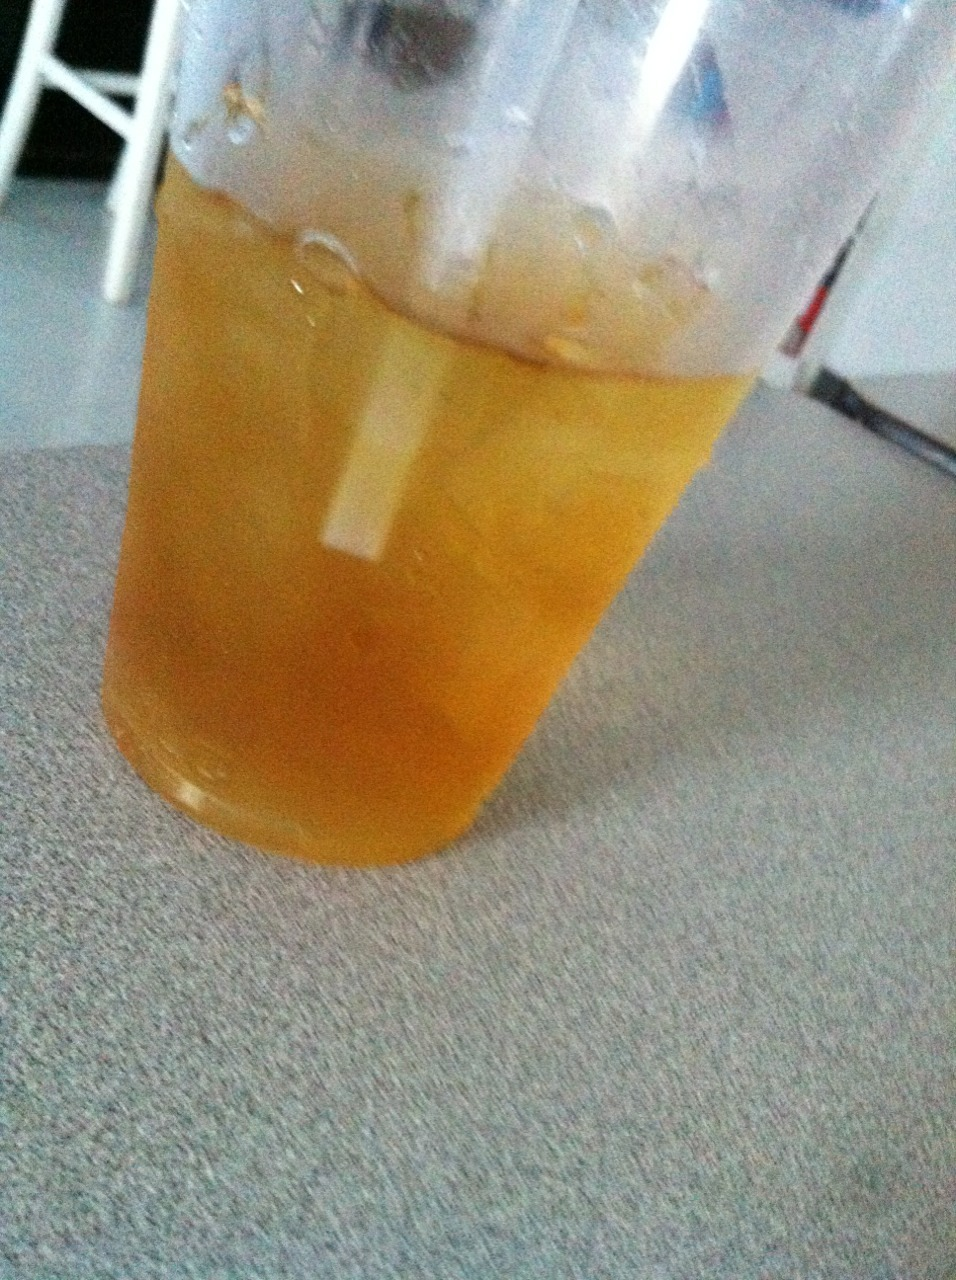 When your girlfriend brings you sweetened/iced/mint tea. 😭 Yes.